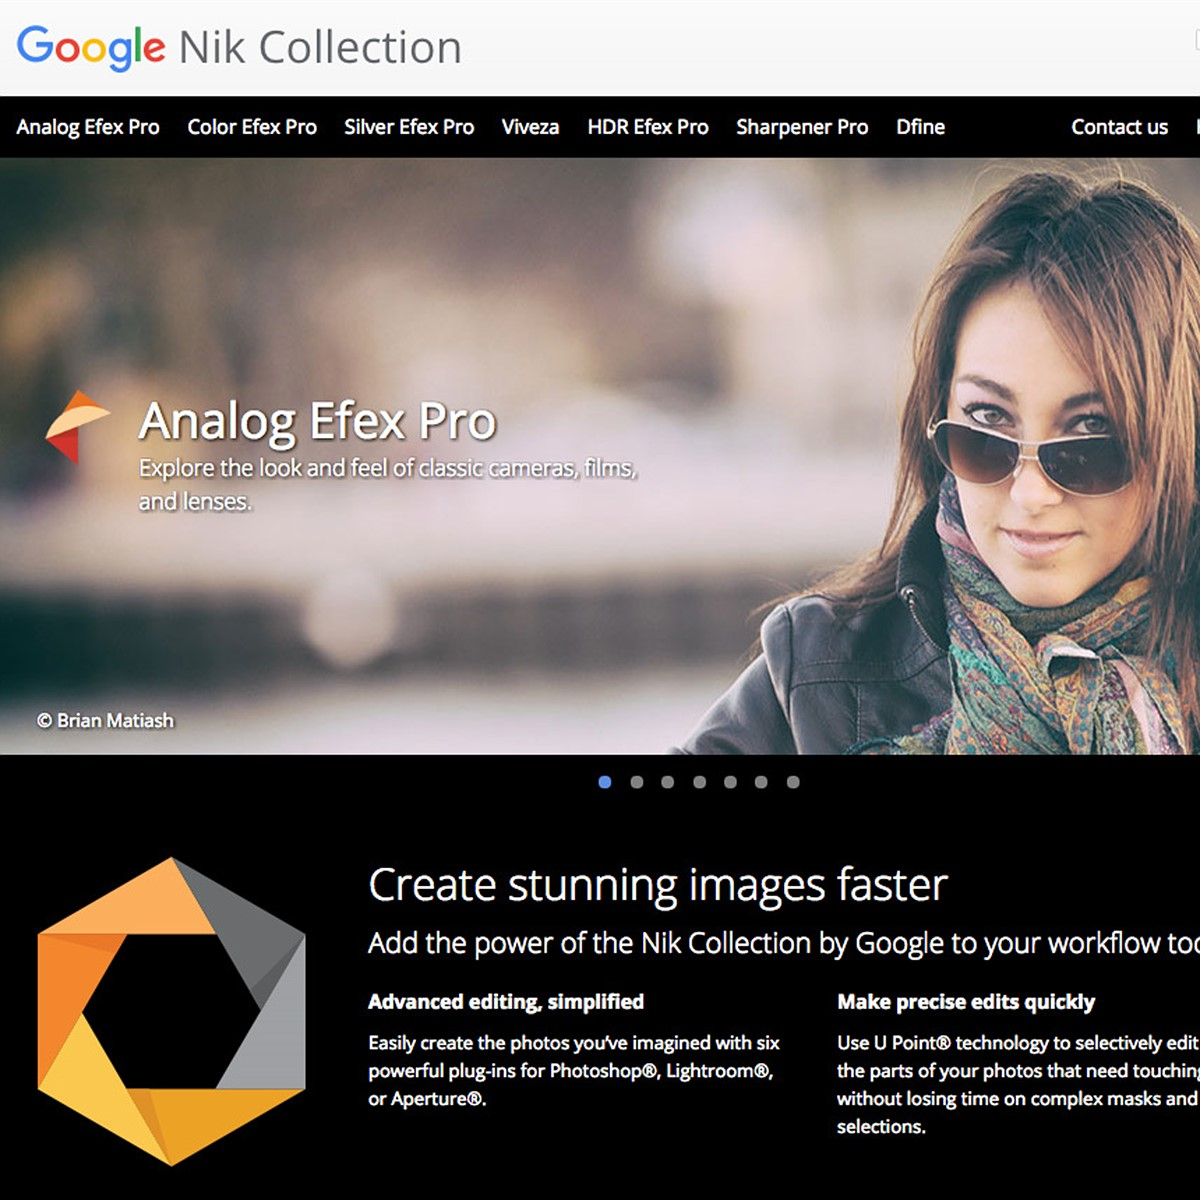 puro Momento Coccole  DxO acquires Nik Collection from Google and will continue to offer it for  free... for now: Digital Photography Review